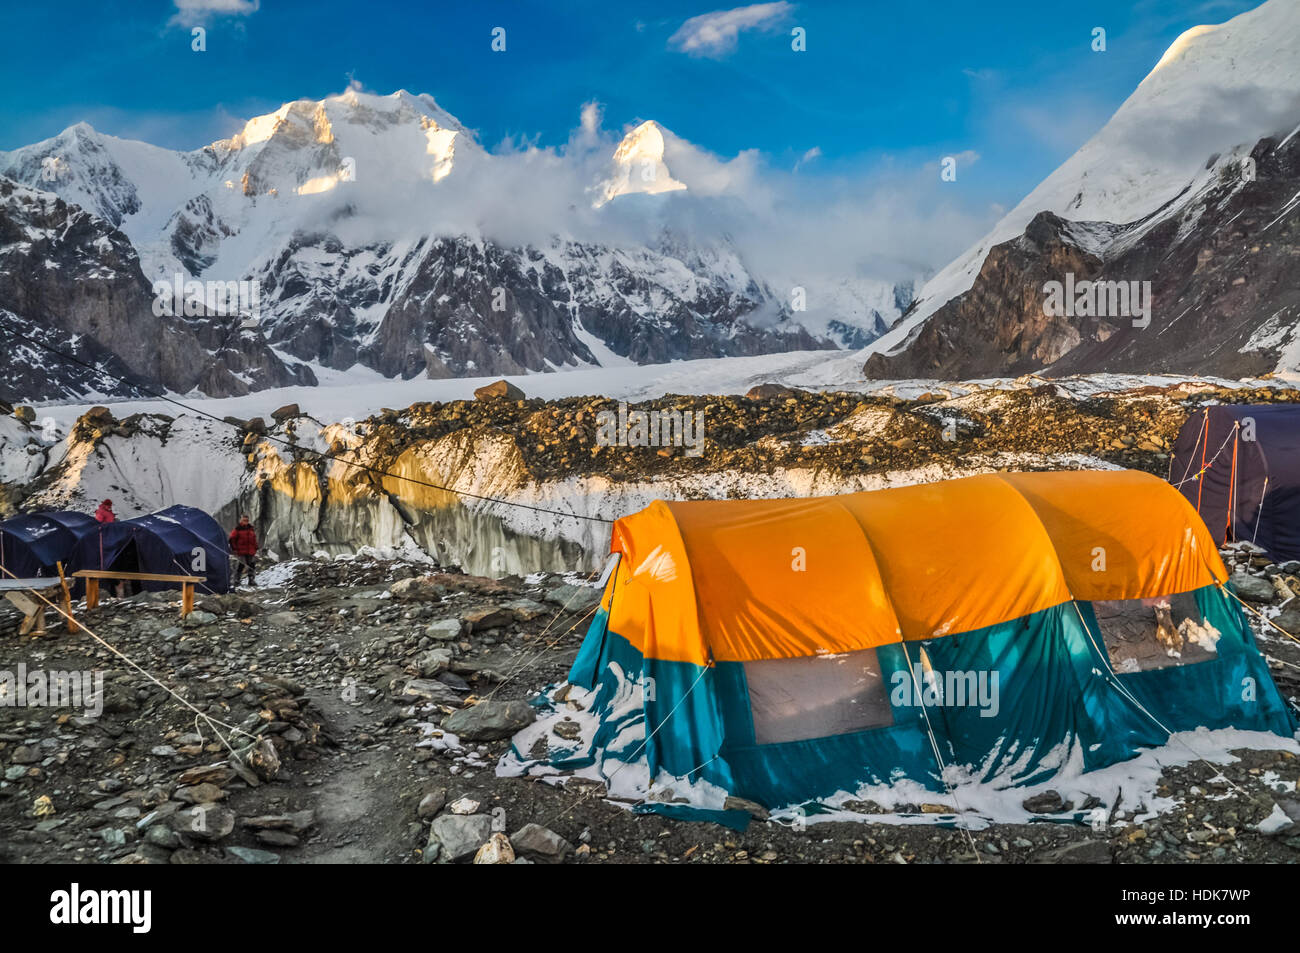 Photo of large tent of hiker on rocky ground near South Inylcheck Glaciar in Kyrgystan. - Stock Image